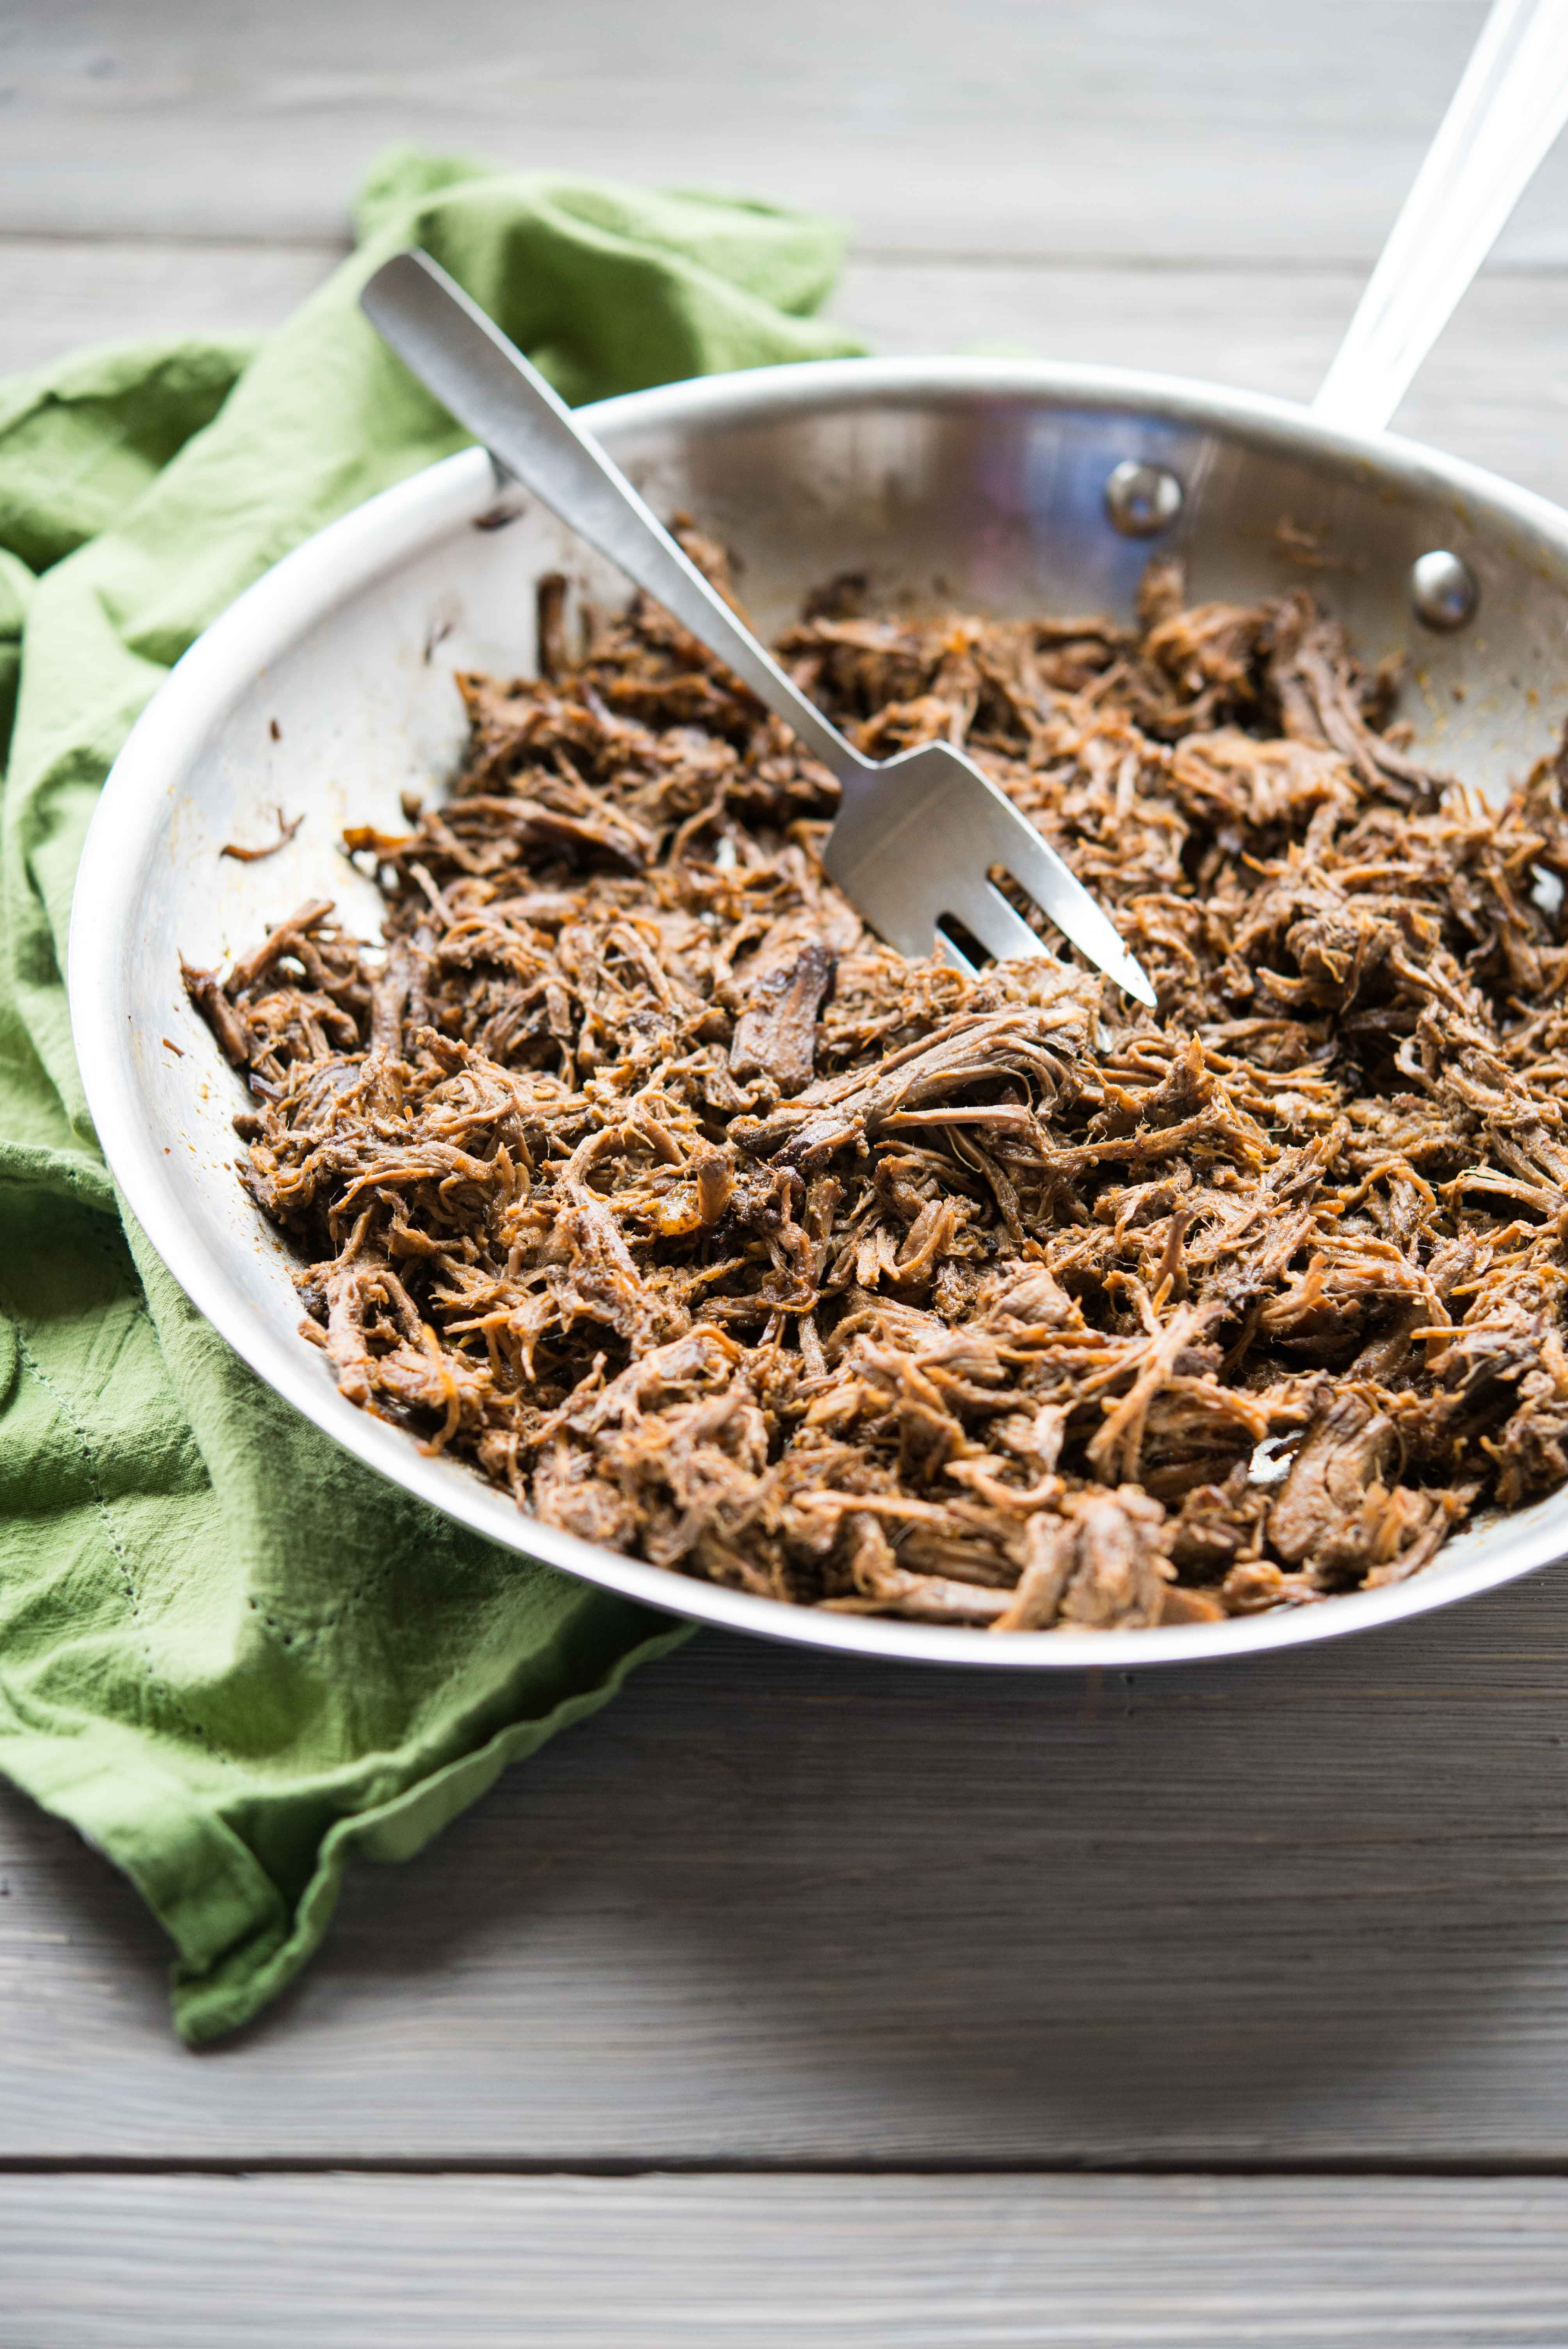 shredded beef barbacoa in a stainless steel pan on a wooden surface with a green towel - slow cooker freezer meals